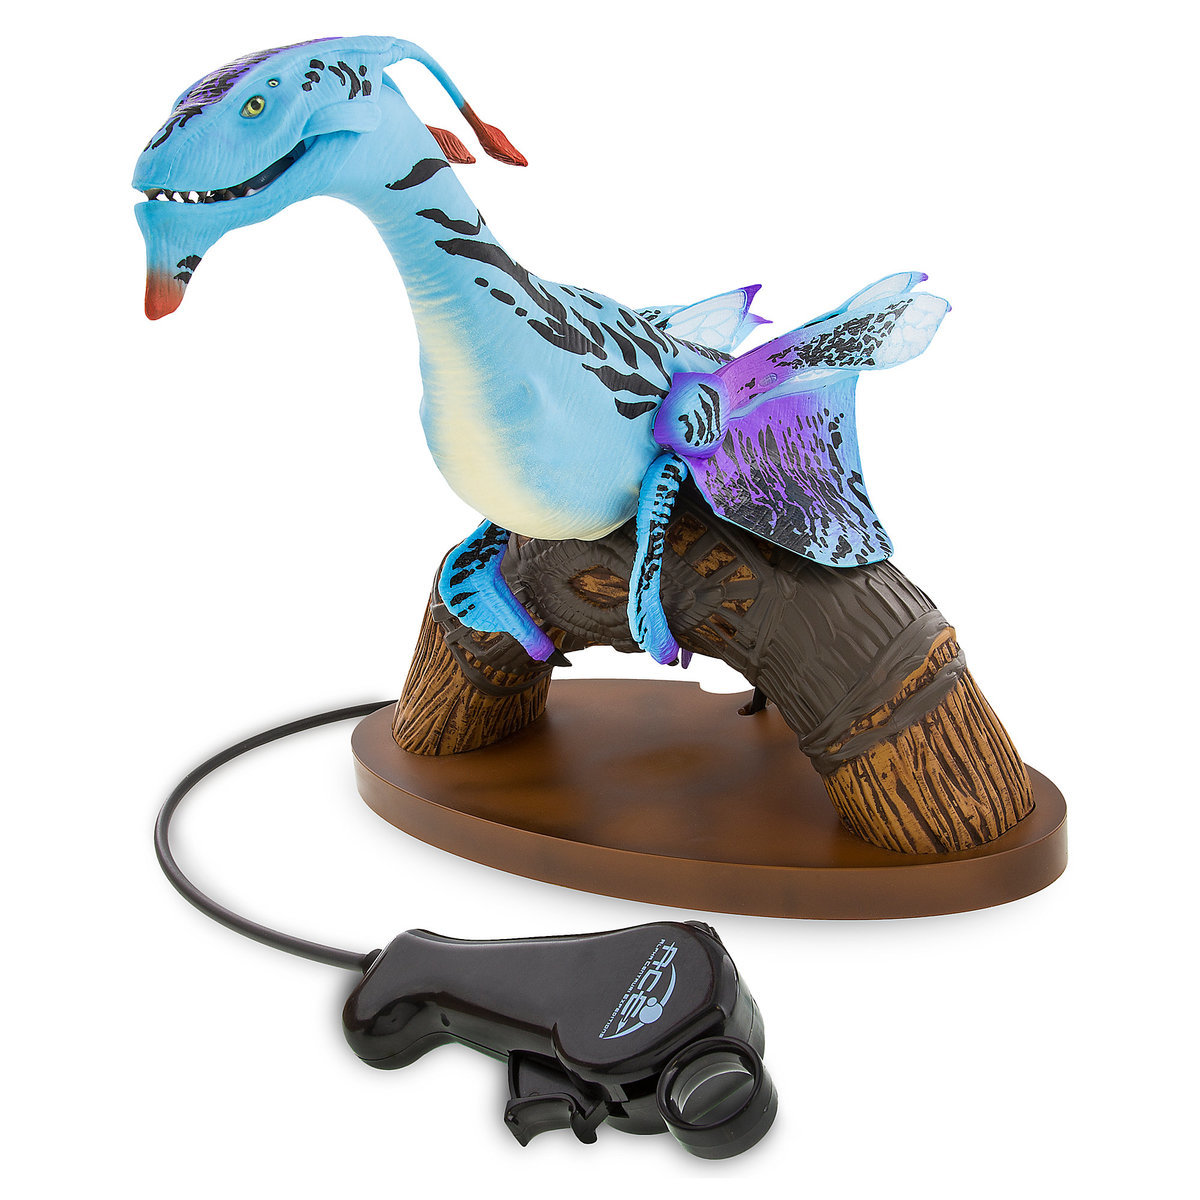 Avatar Dragon: Blue Body With Black And Purple